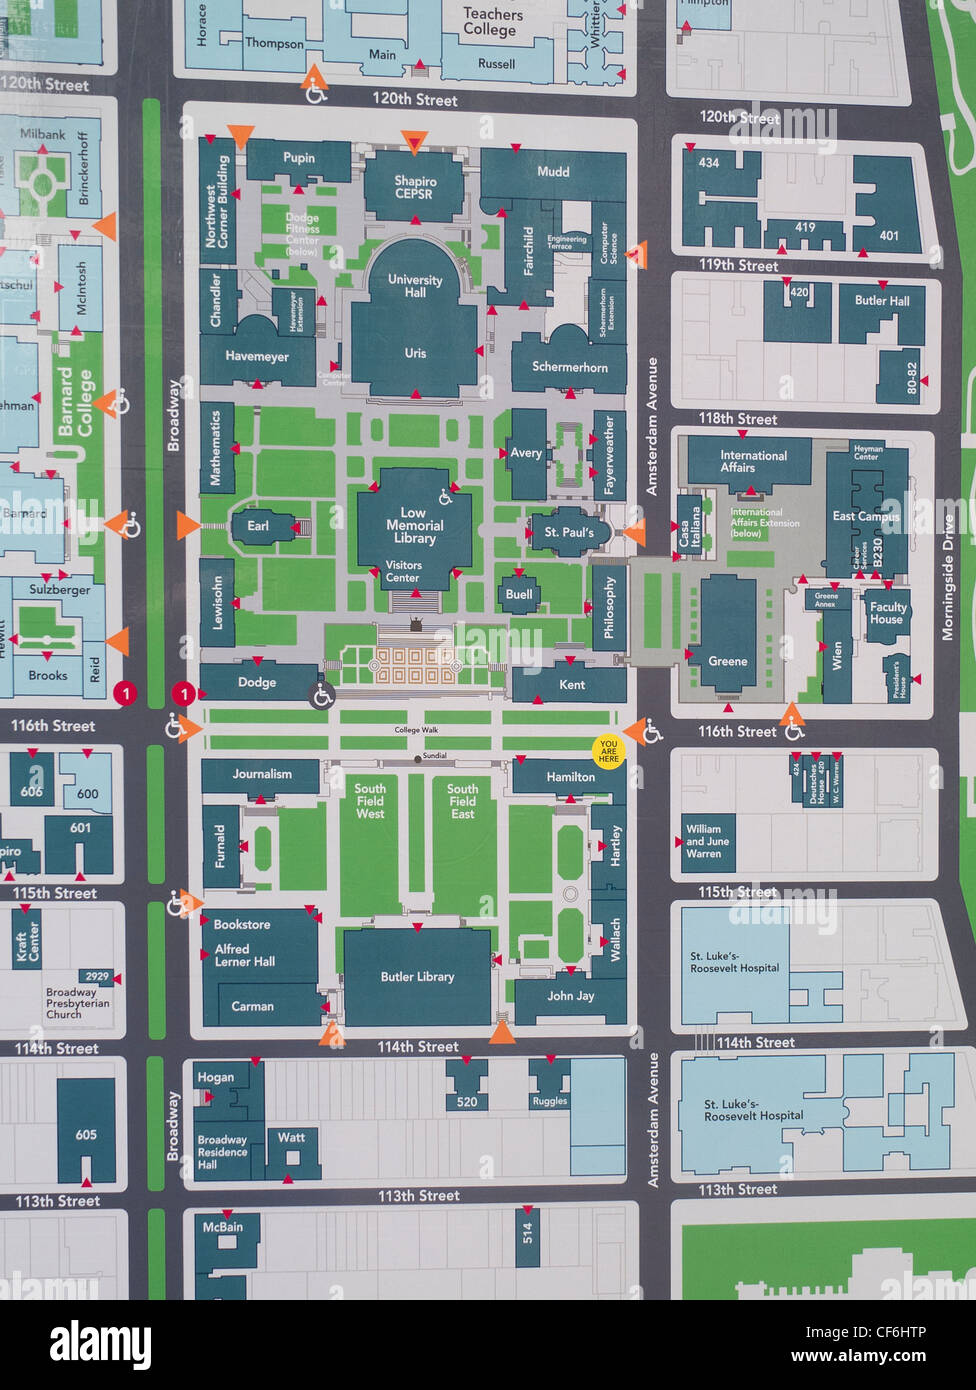 Morningside College Campus Map.Campus Map Of Columbia University Stock Photo 43786310 Alamy